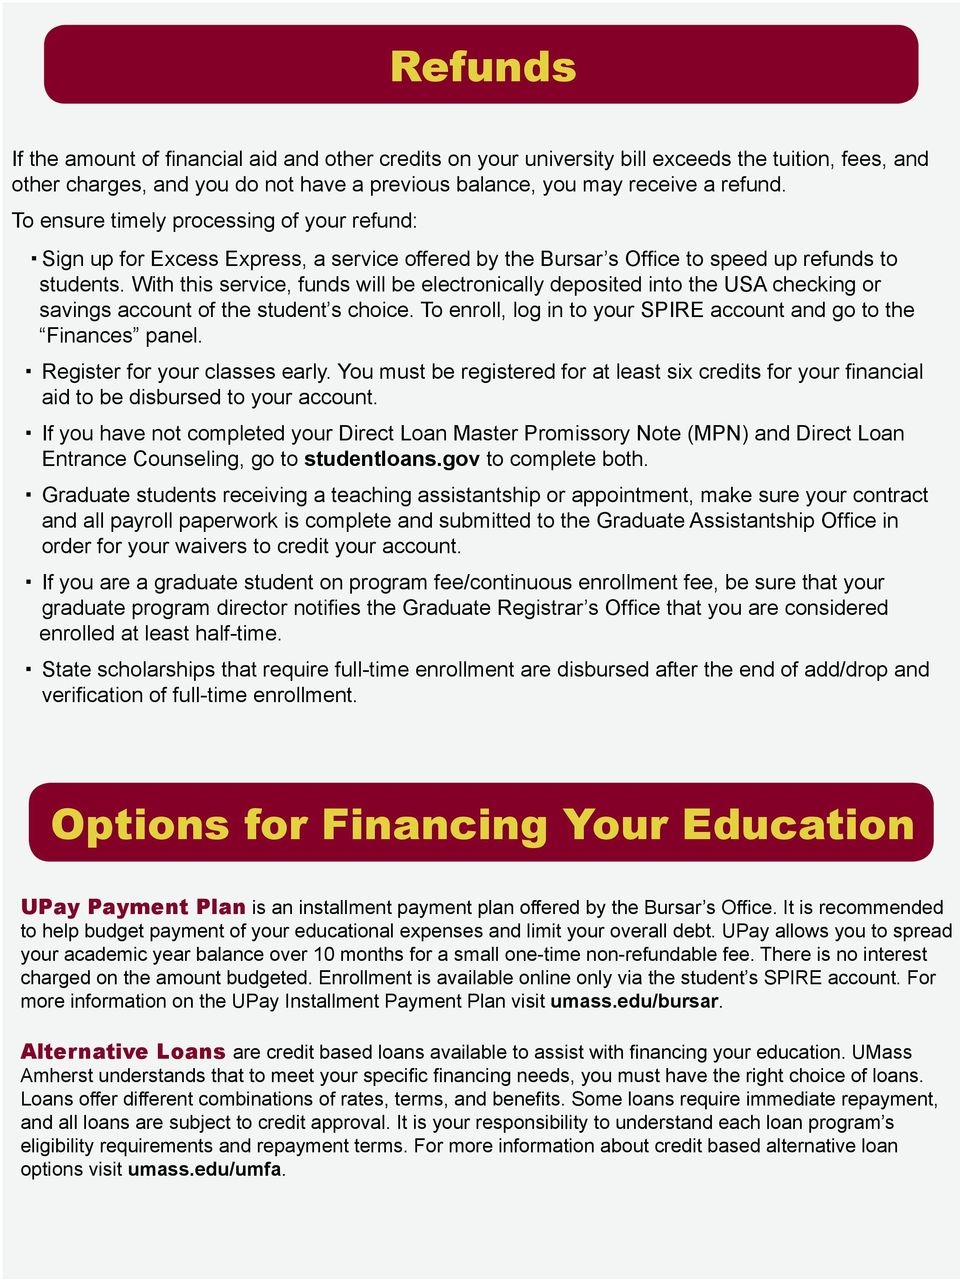 With this service, funds will be electronically deposited into the USA checking or savings account of the student s choice. To enroll, log in to your SPIRE account and go to the Finances panel.